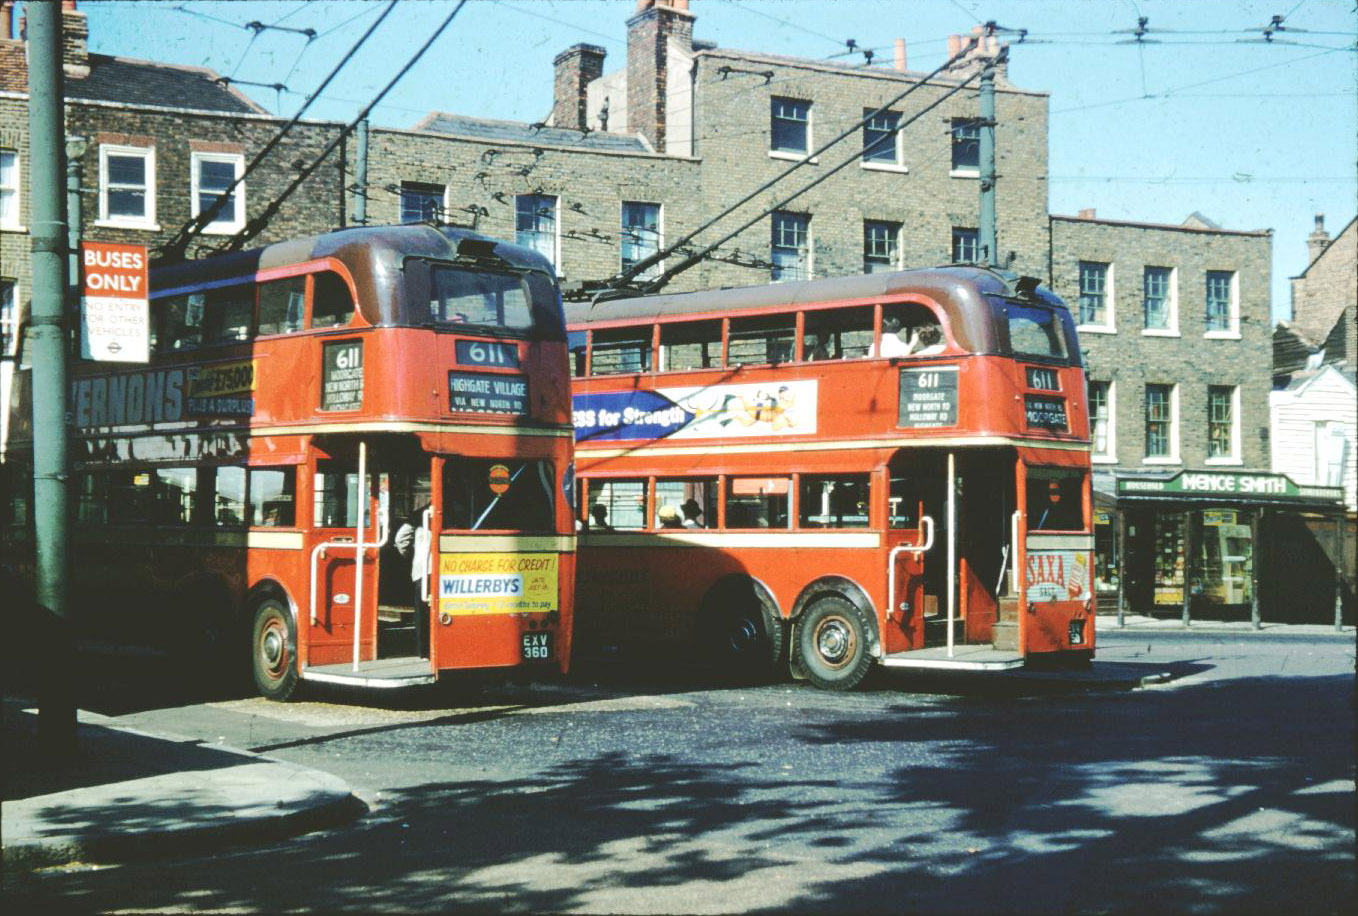 david bradley online - london trolleybuses on route 611 at highgate